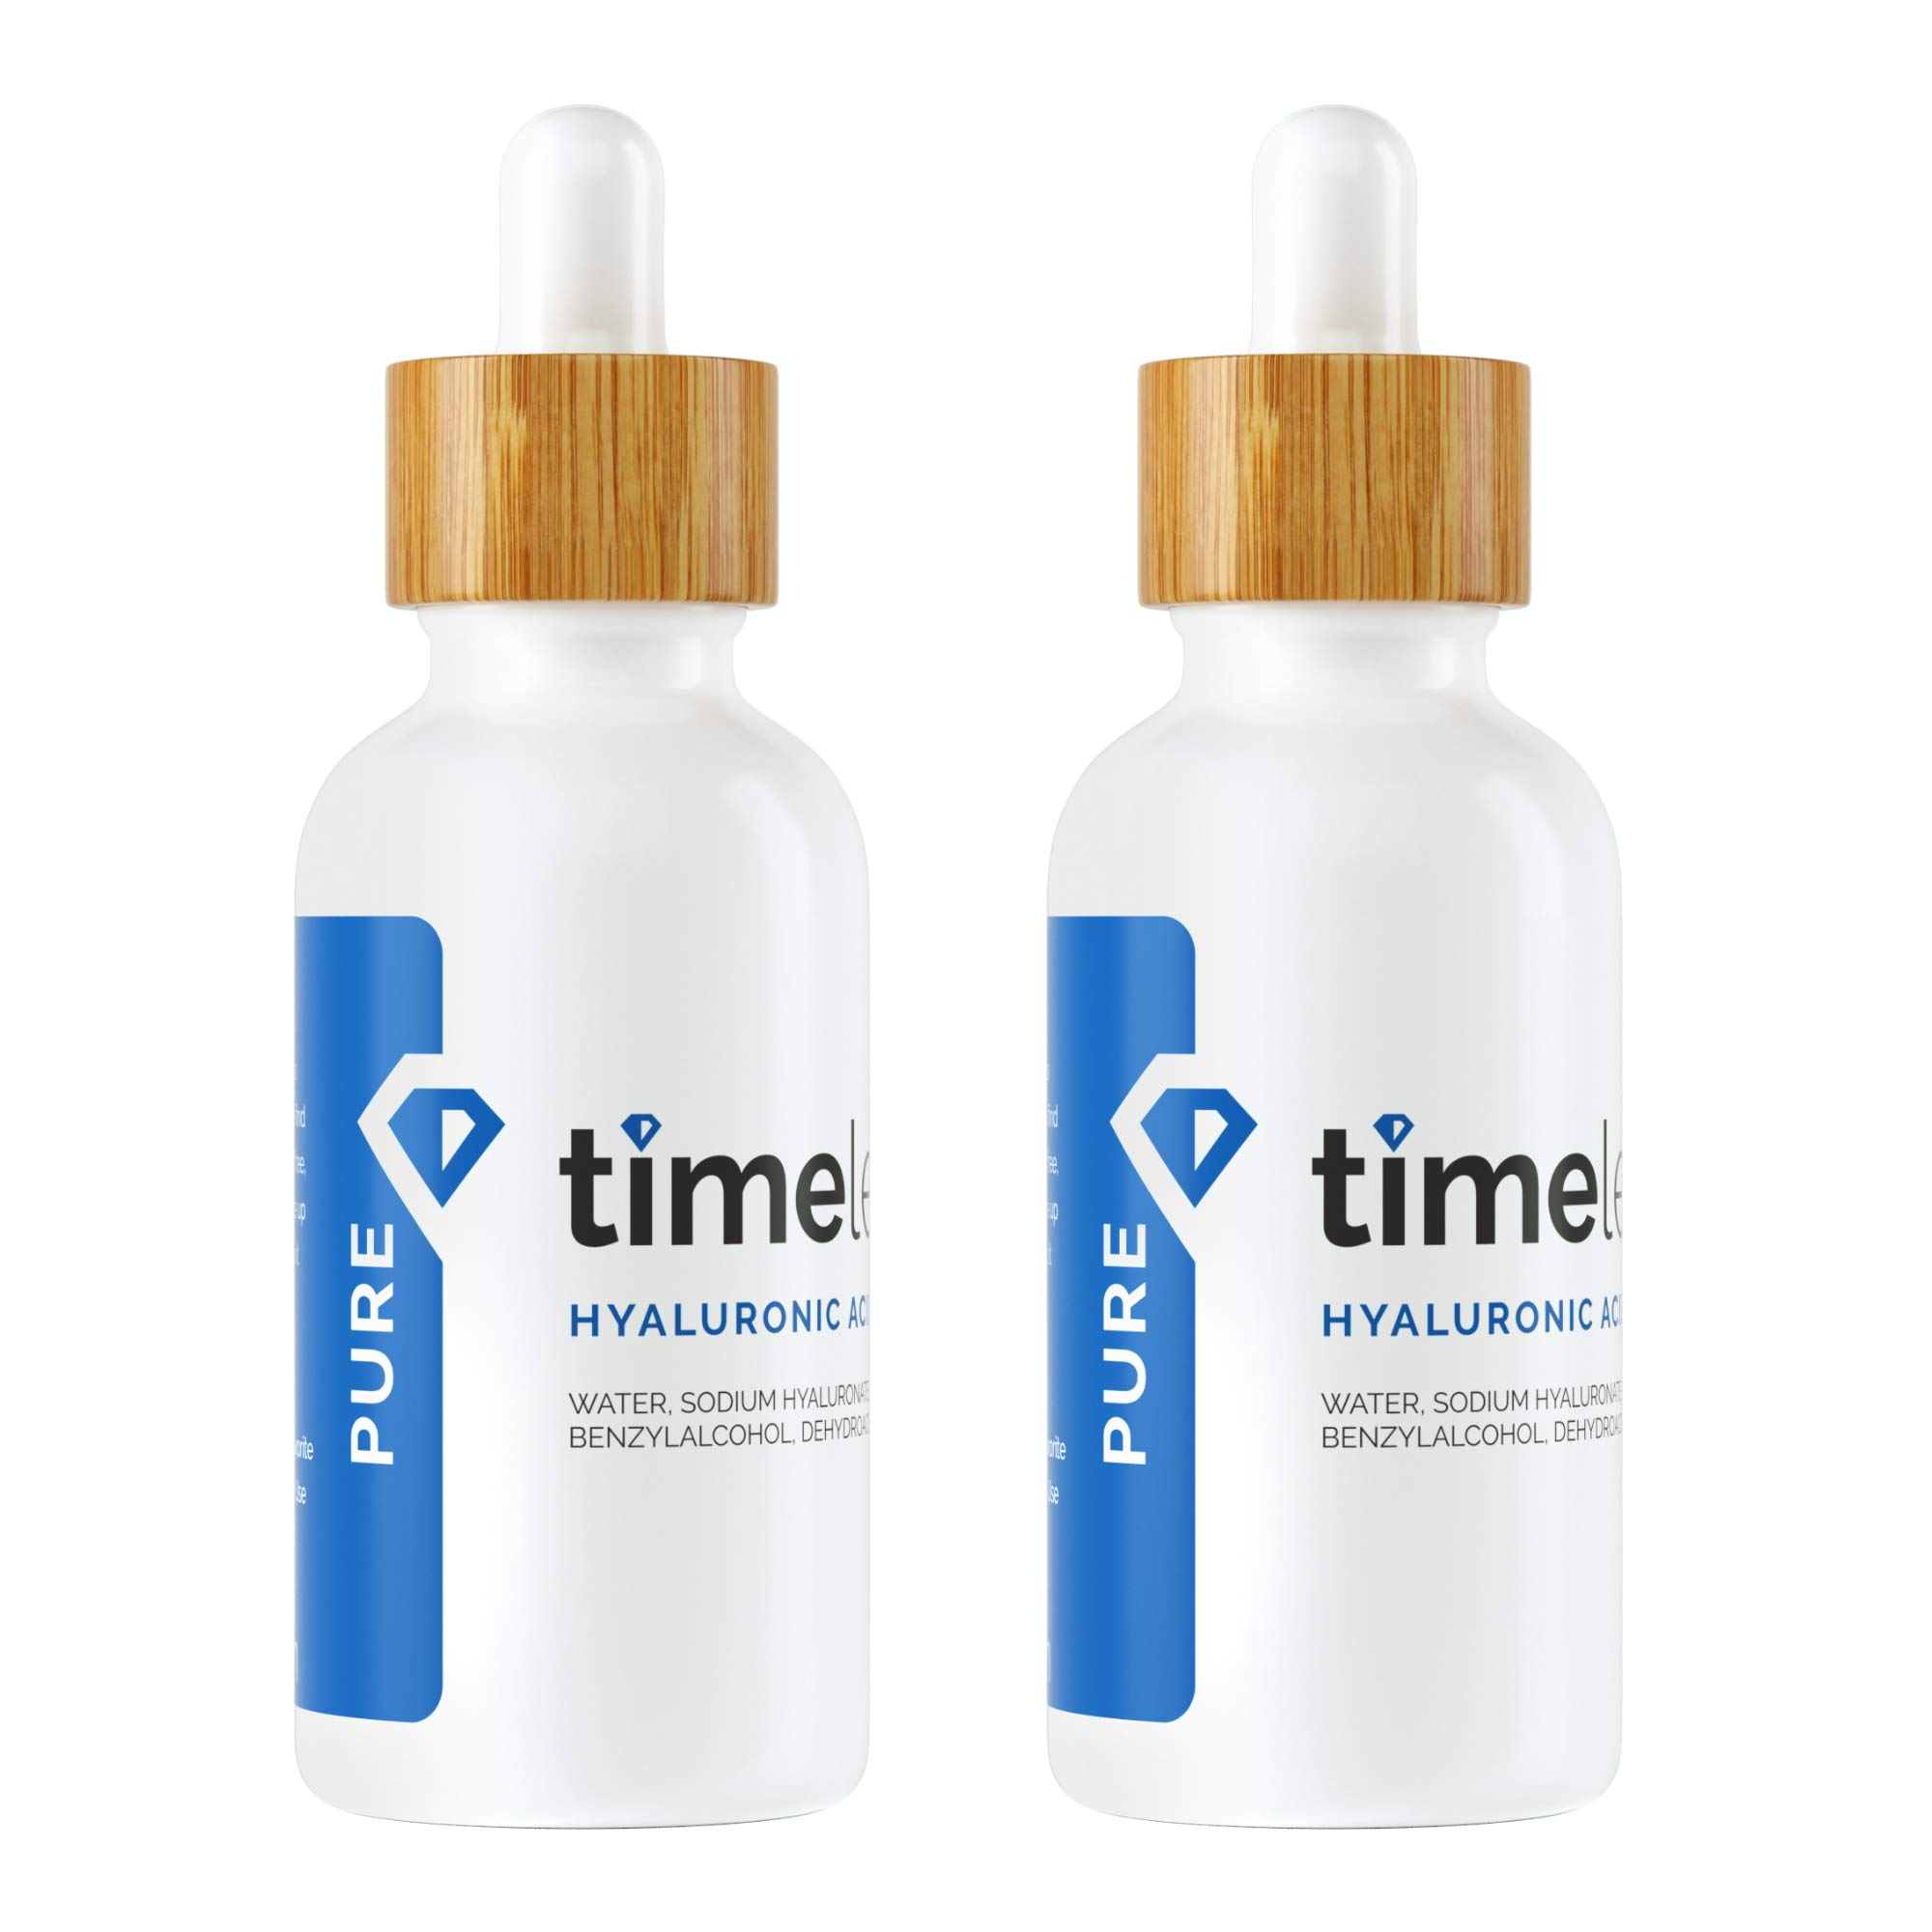 Timeless Skin Care Hyaluronic Acid 100% Pure Serum - 2 oz, 2 Pack - Powerful Formula to Rehydrate Skin & Boost Moisture Levels + Relieves Appearance of Skin Tightness - Recommended for All Skin Types